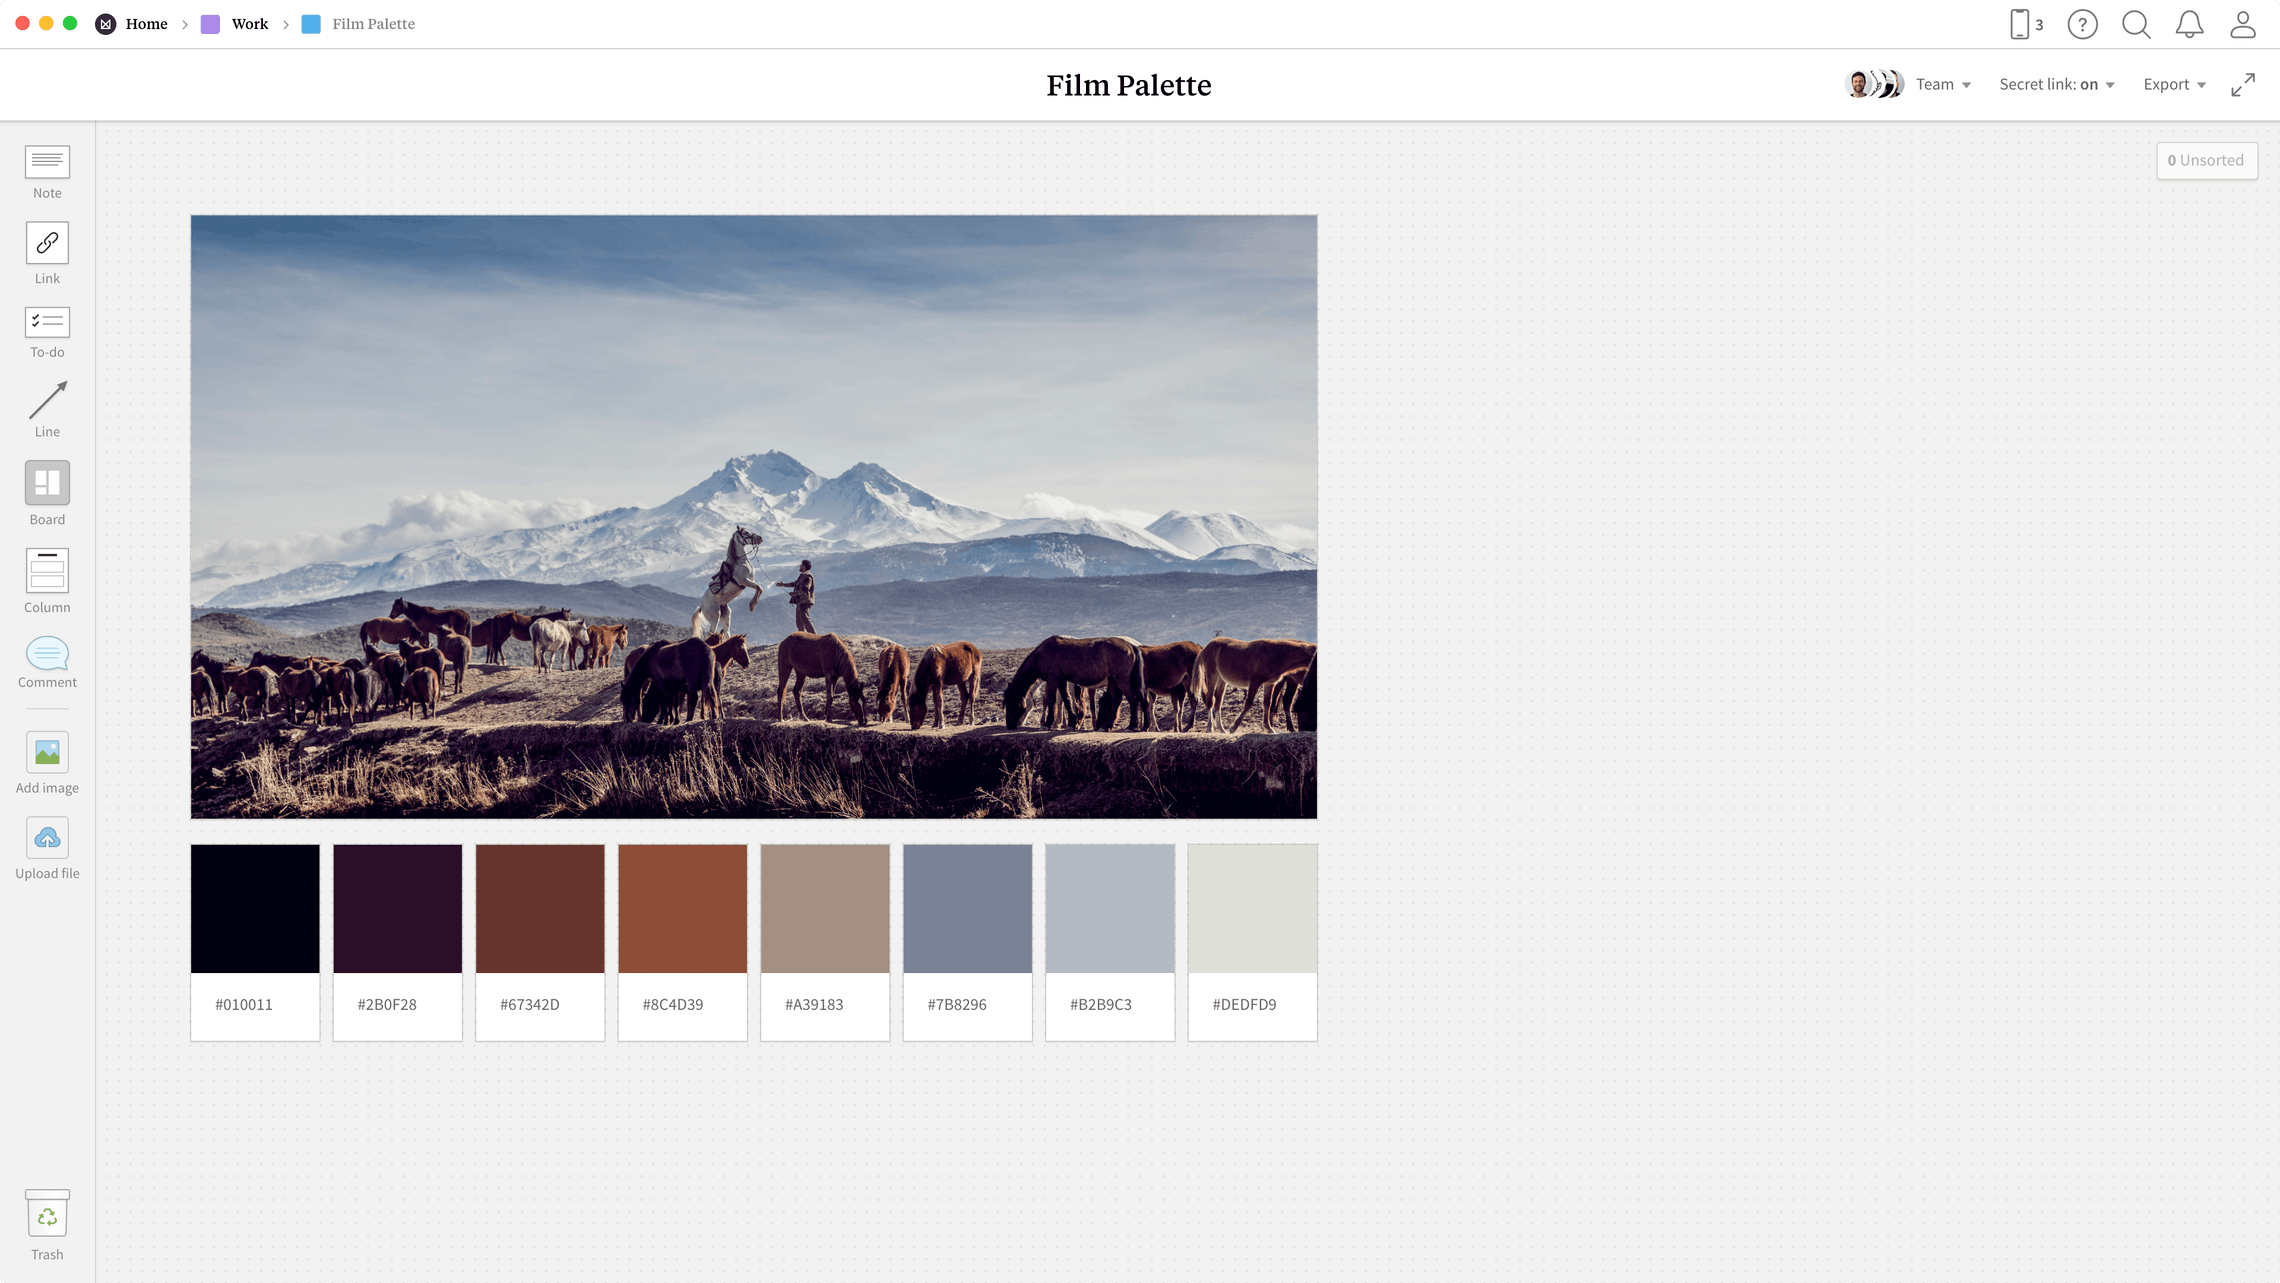 Film Palette Template, within the Milanote app